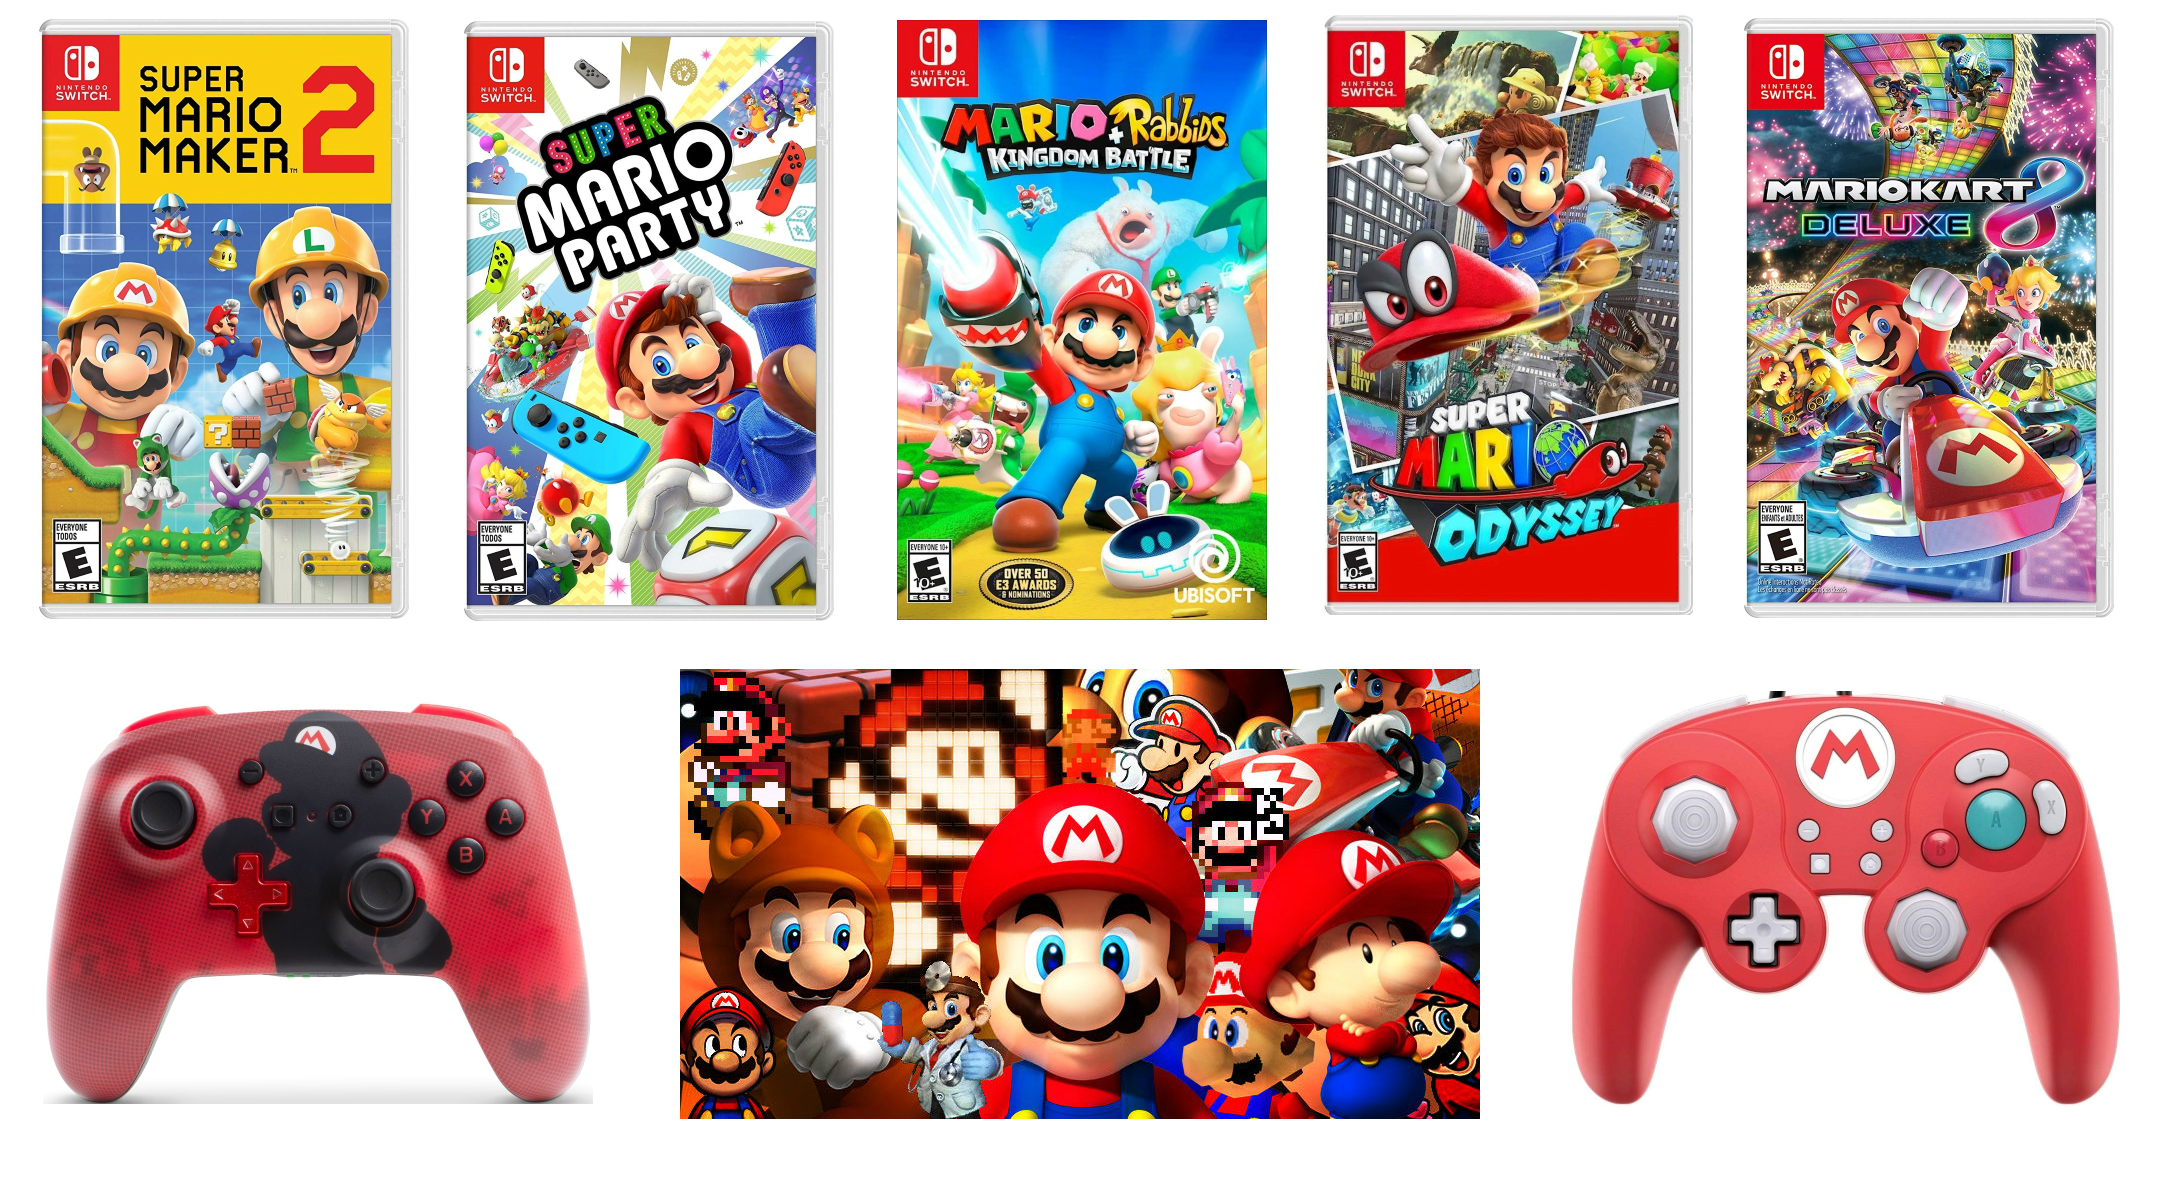 Nintendo Switch Mario Games Go On Sale For Mar10 Day Ars Technica